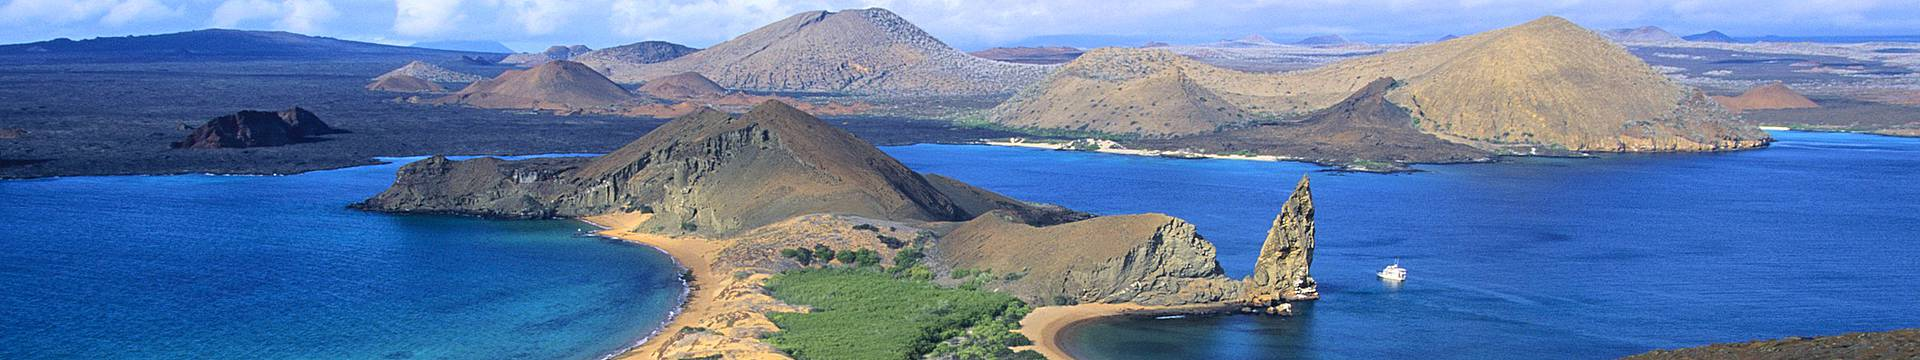 The Galapagos Islands Holidays